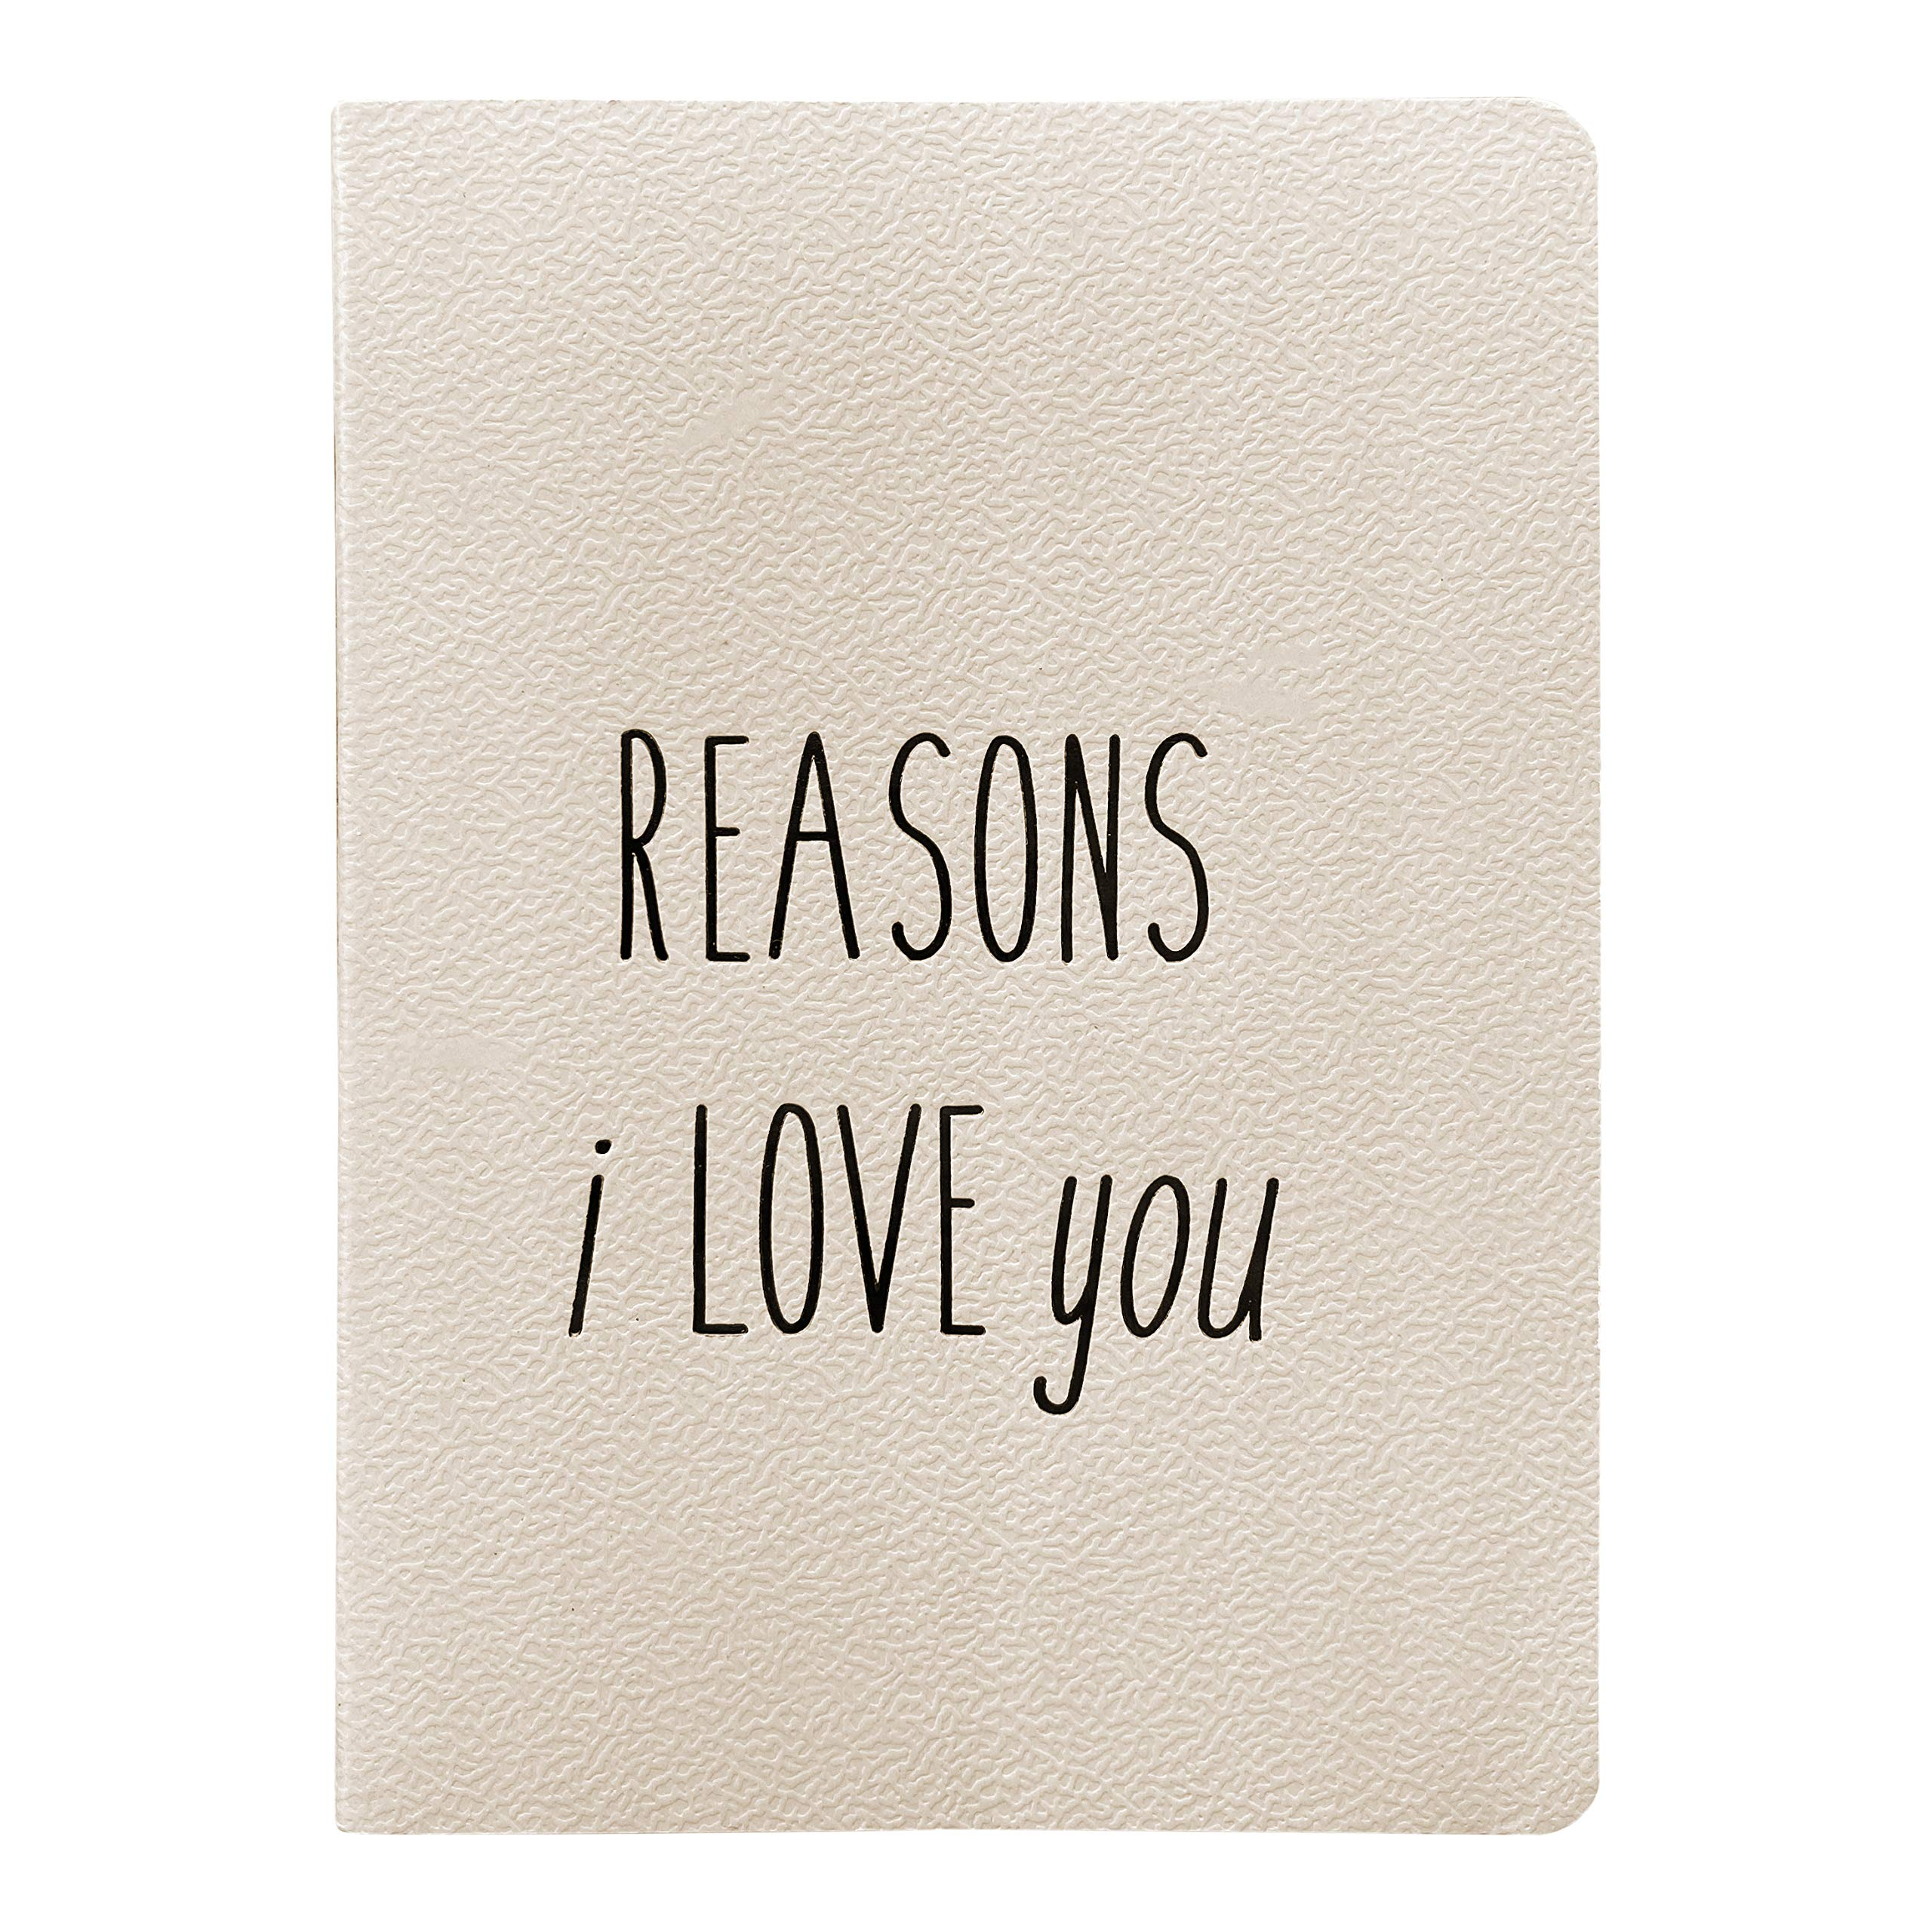 Reasons Why I Love You Journal for Boyfriend or Girlfriend, Best Friend, Husband or Wife - Anniversary, Bride & Groom, Couples Gifts Notebook for Engagement, Proposal or Wedding Gift